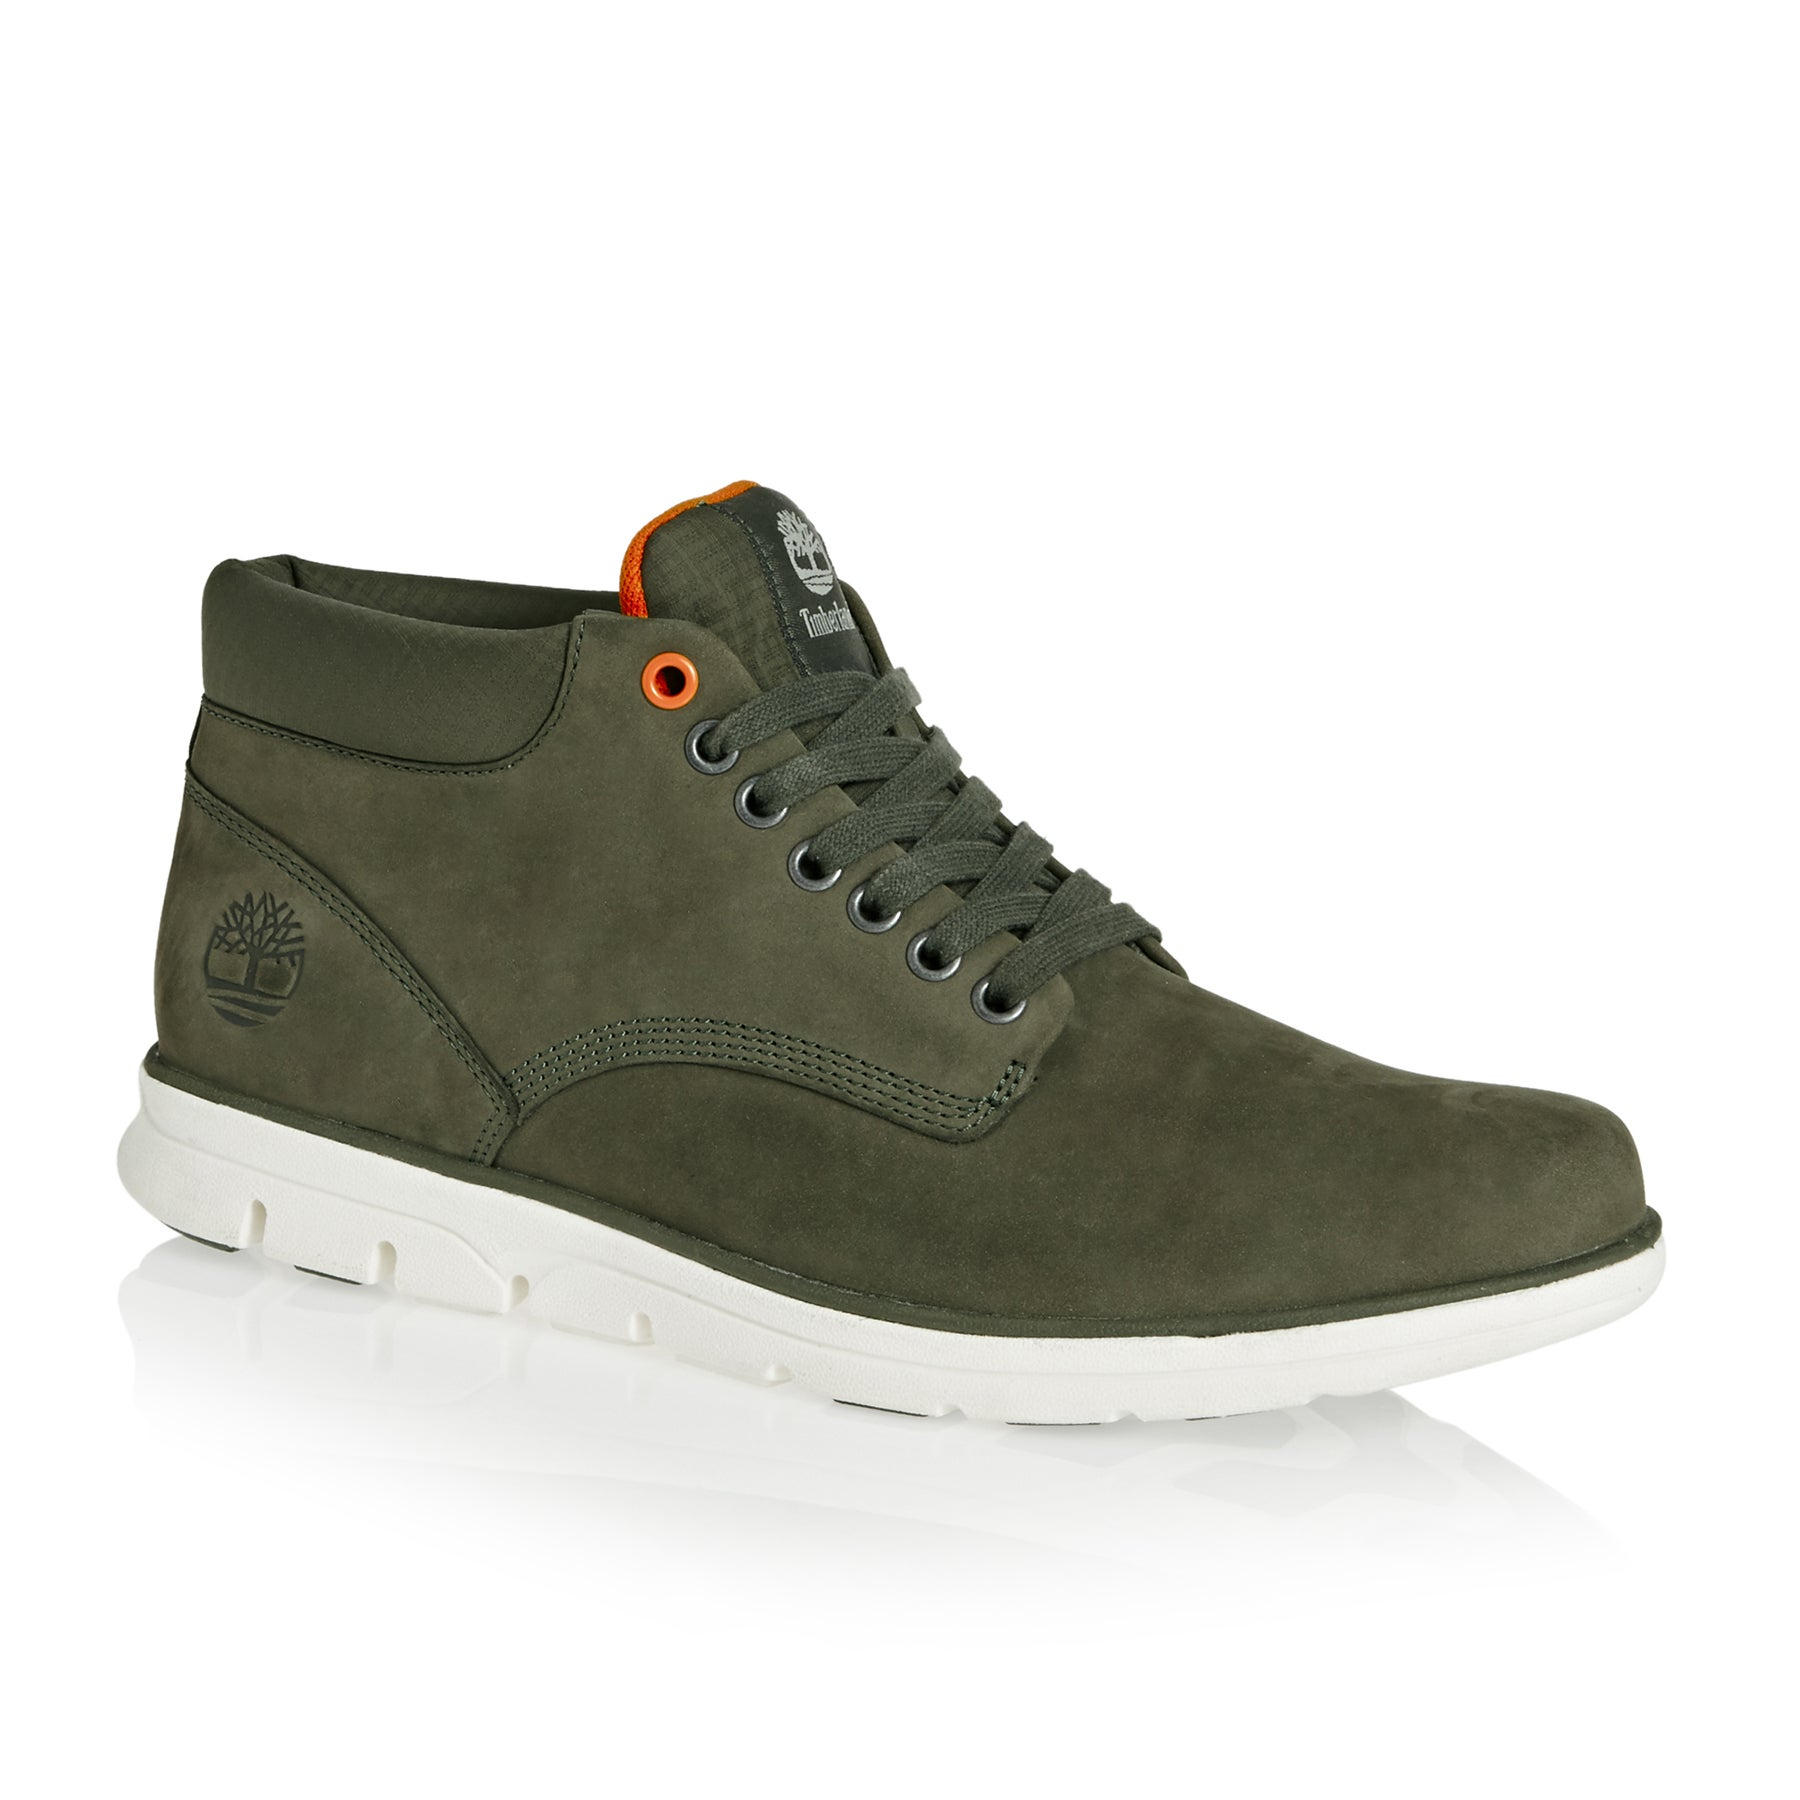 Timberland Bradstreet Chukka Le Grape Leaf Boots